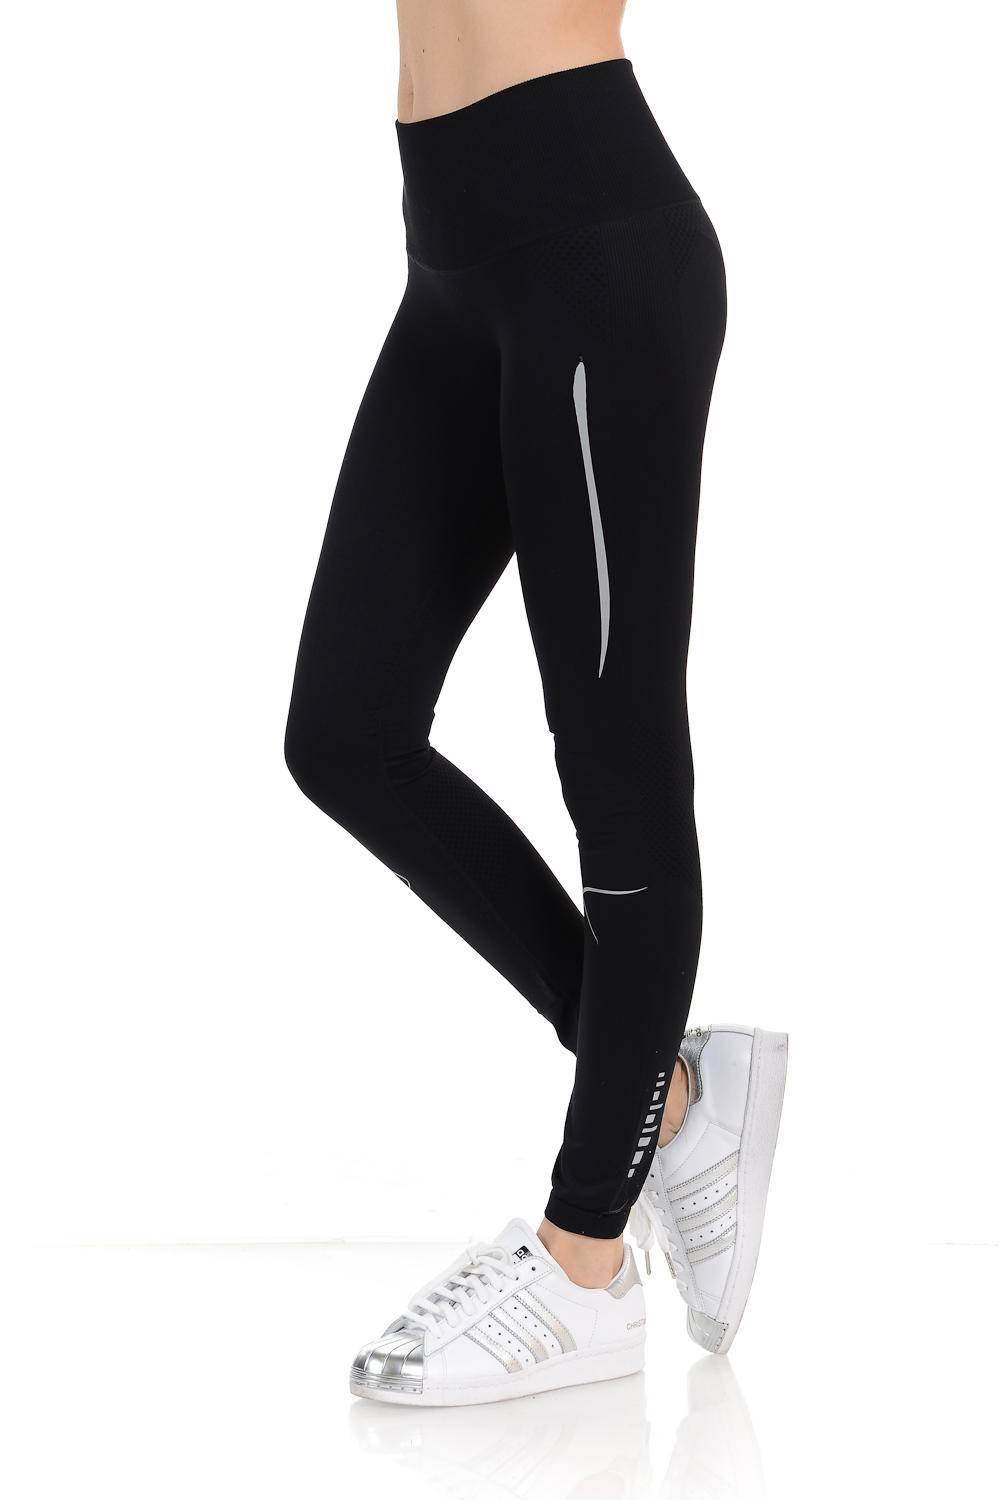 e4f0309496815 Sweet Look Women's Power Flex Yoga Pant Legging Sportswear · Style A03